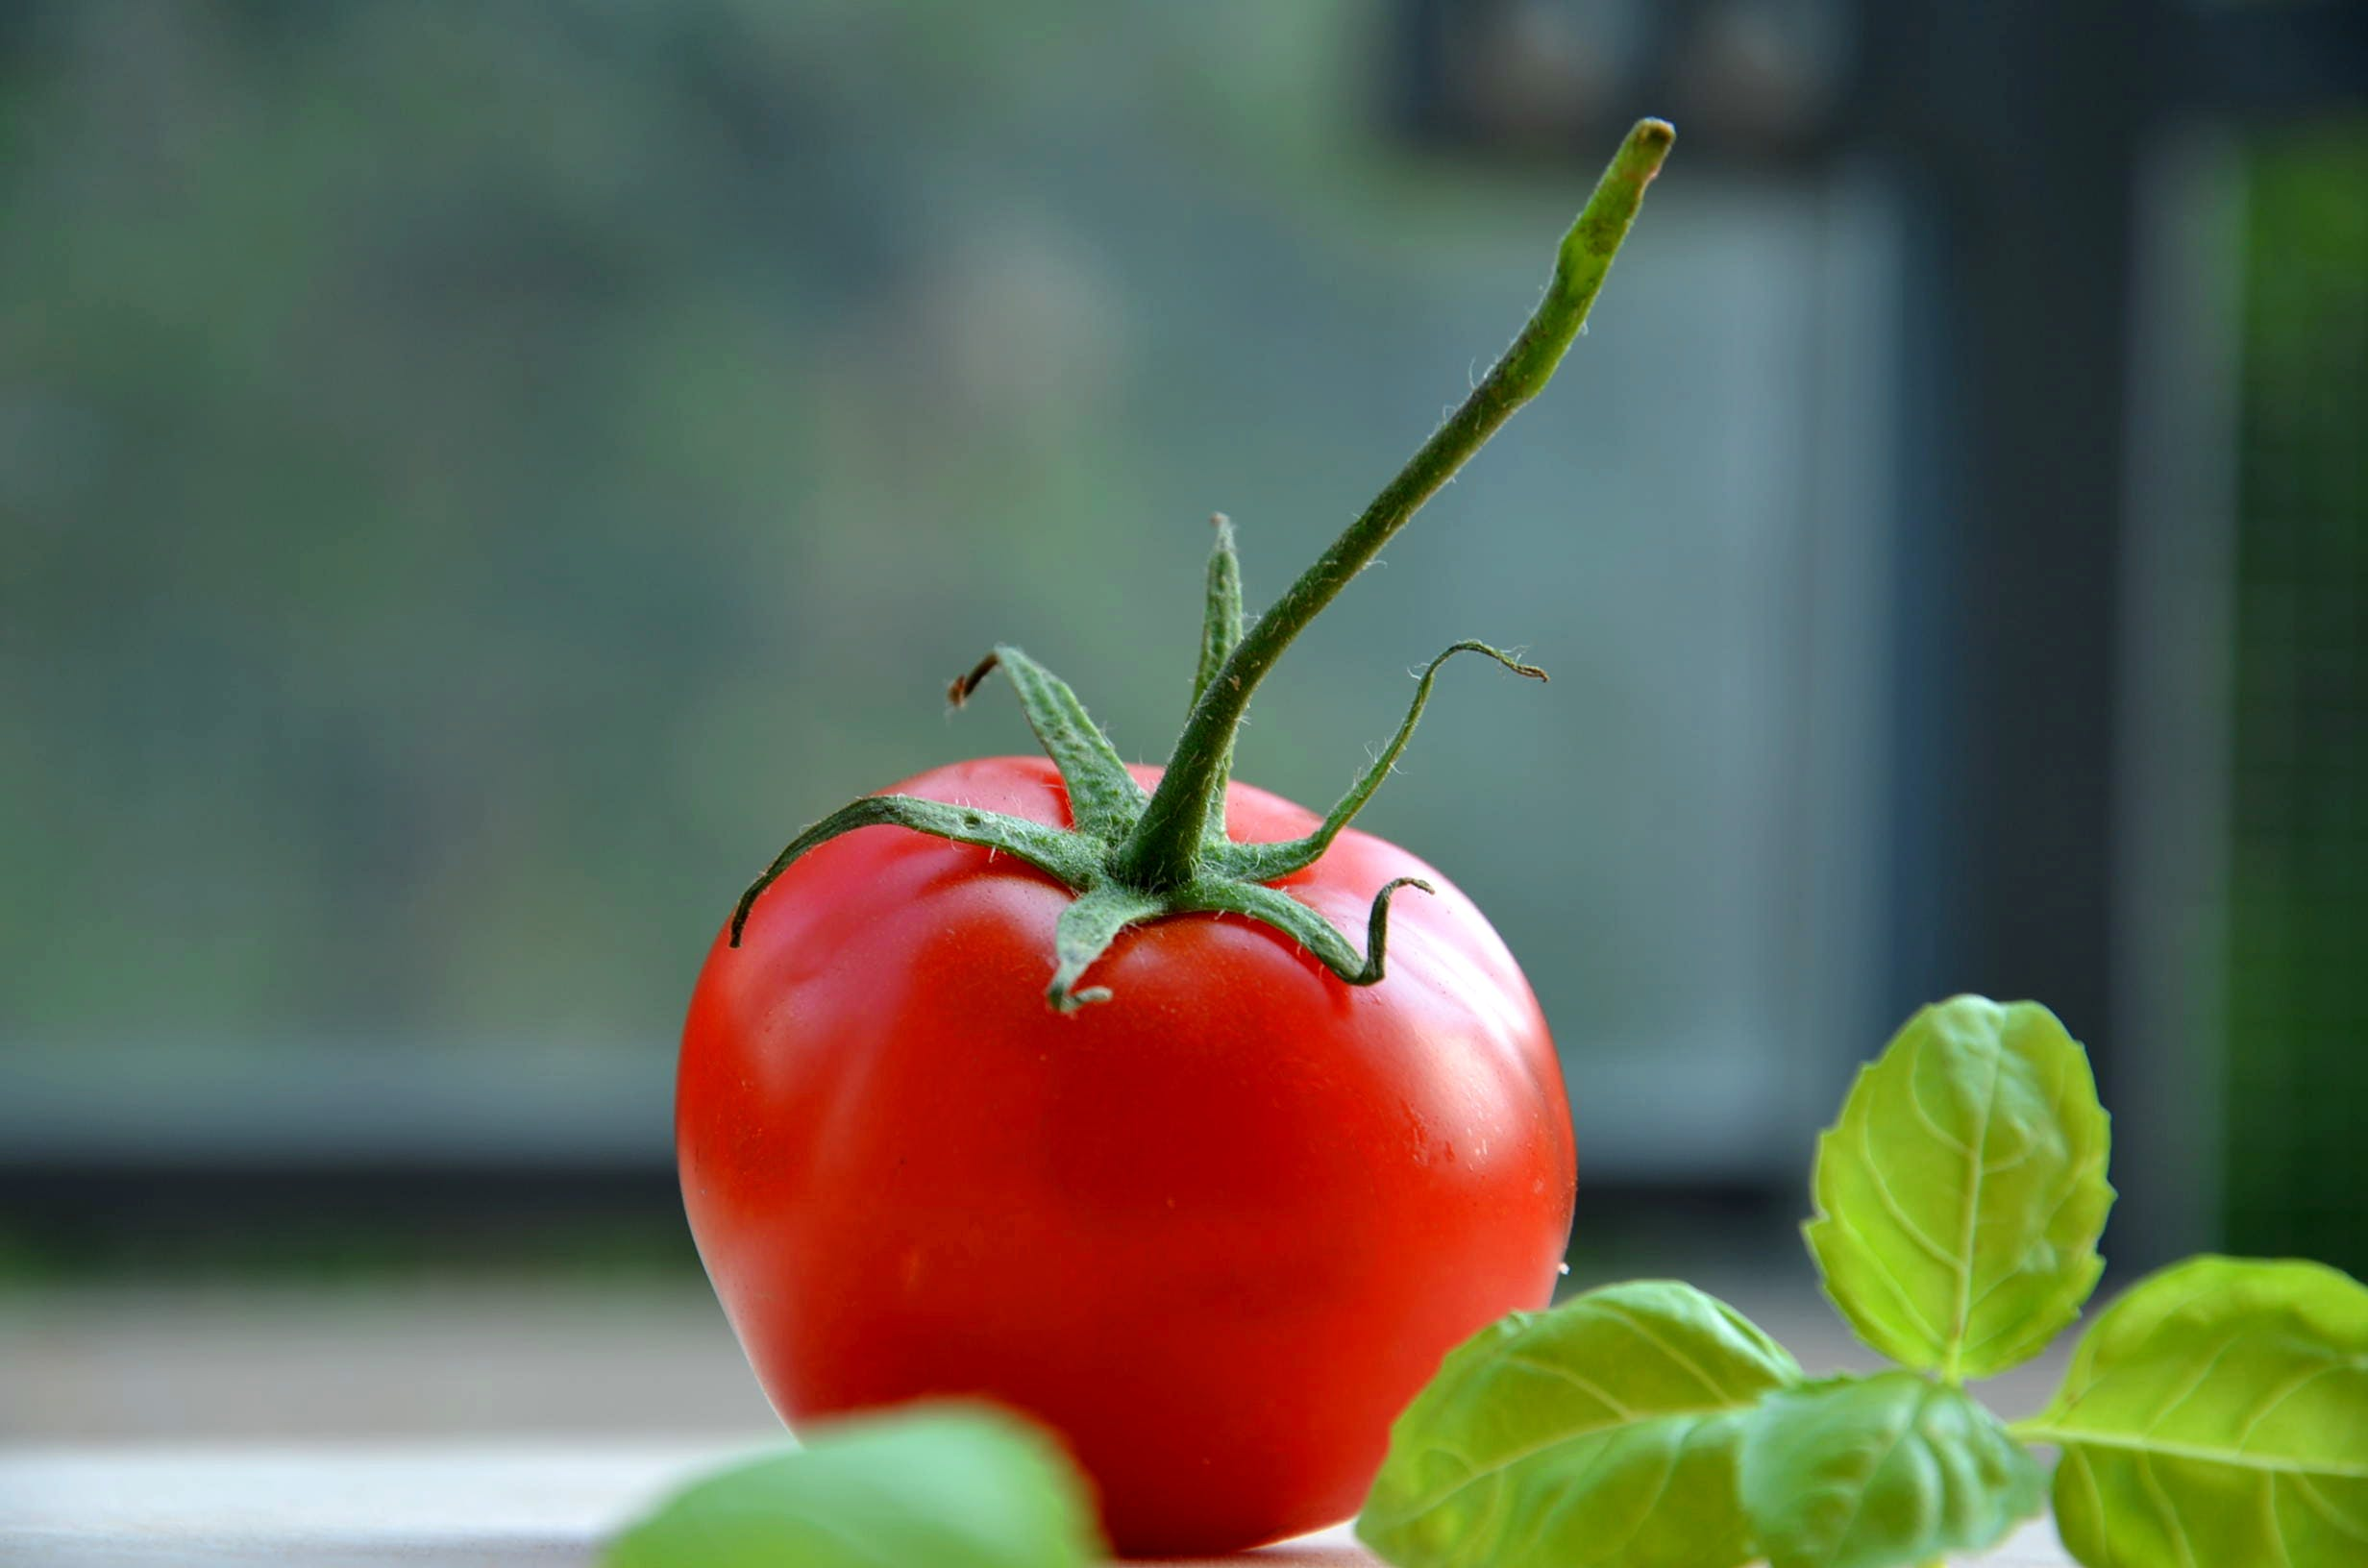 Free stock photo of tomato, vegetable, basil